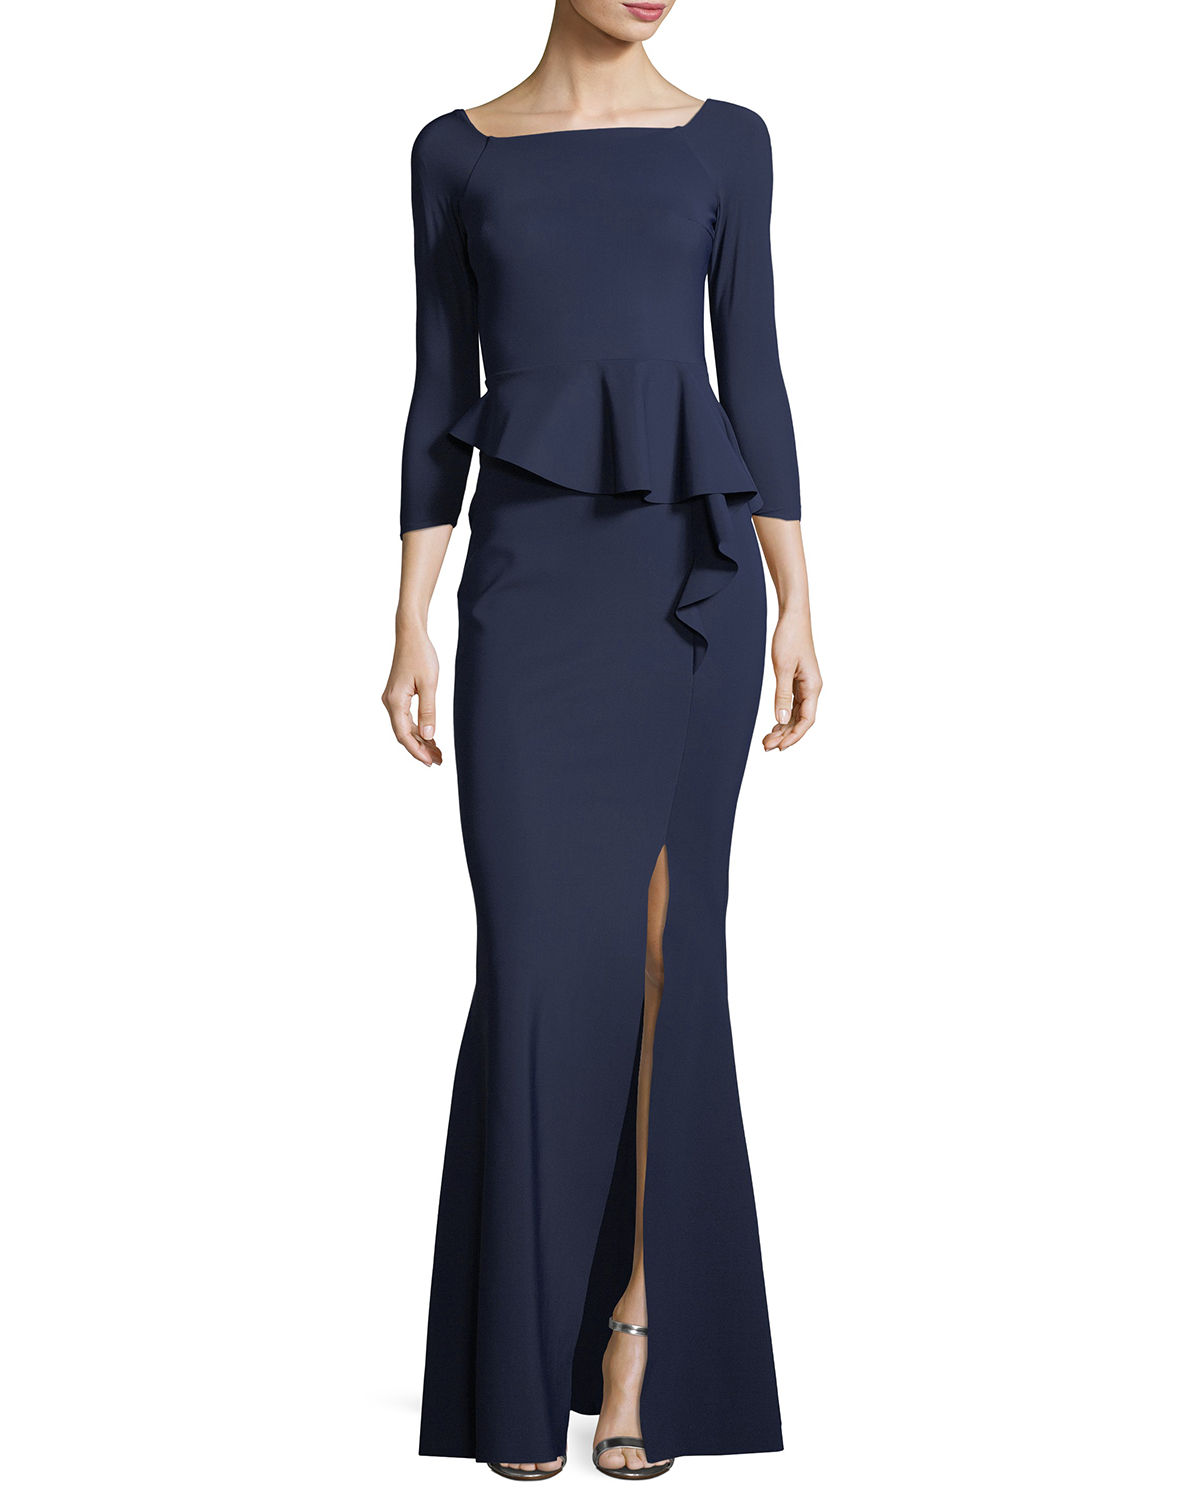 Adela Off-the-Shoulder Asymmetric Peplum Evening Gown